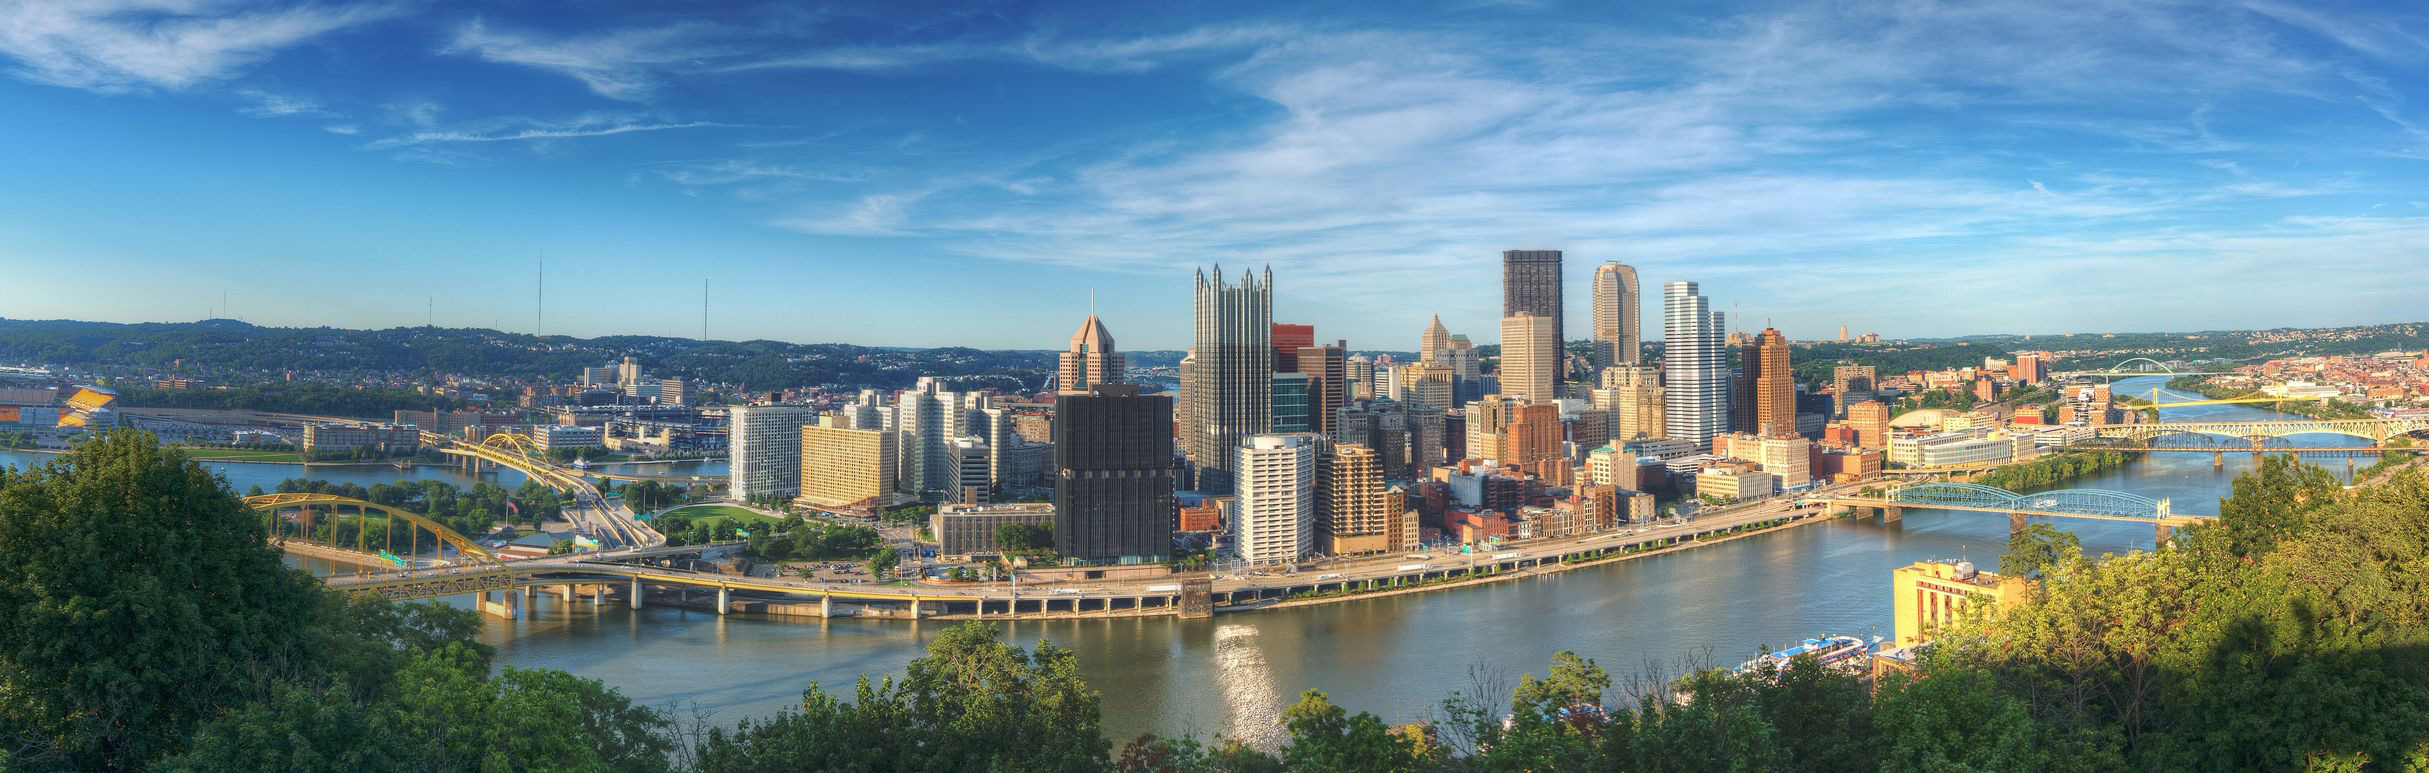 Headquartered in Pittsburgh For More Than 25 Years